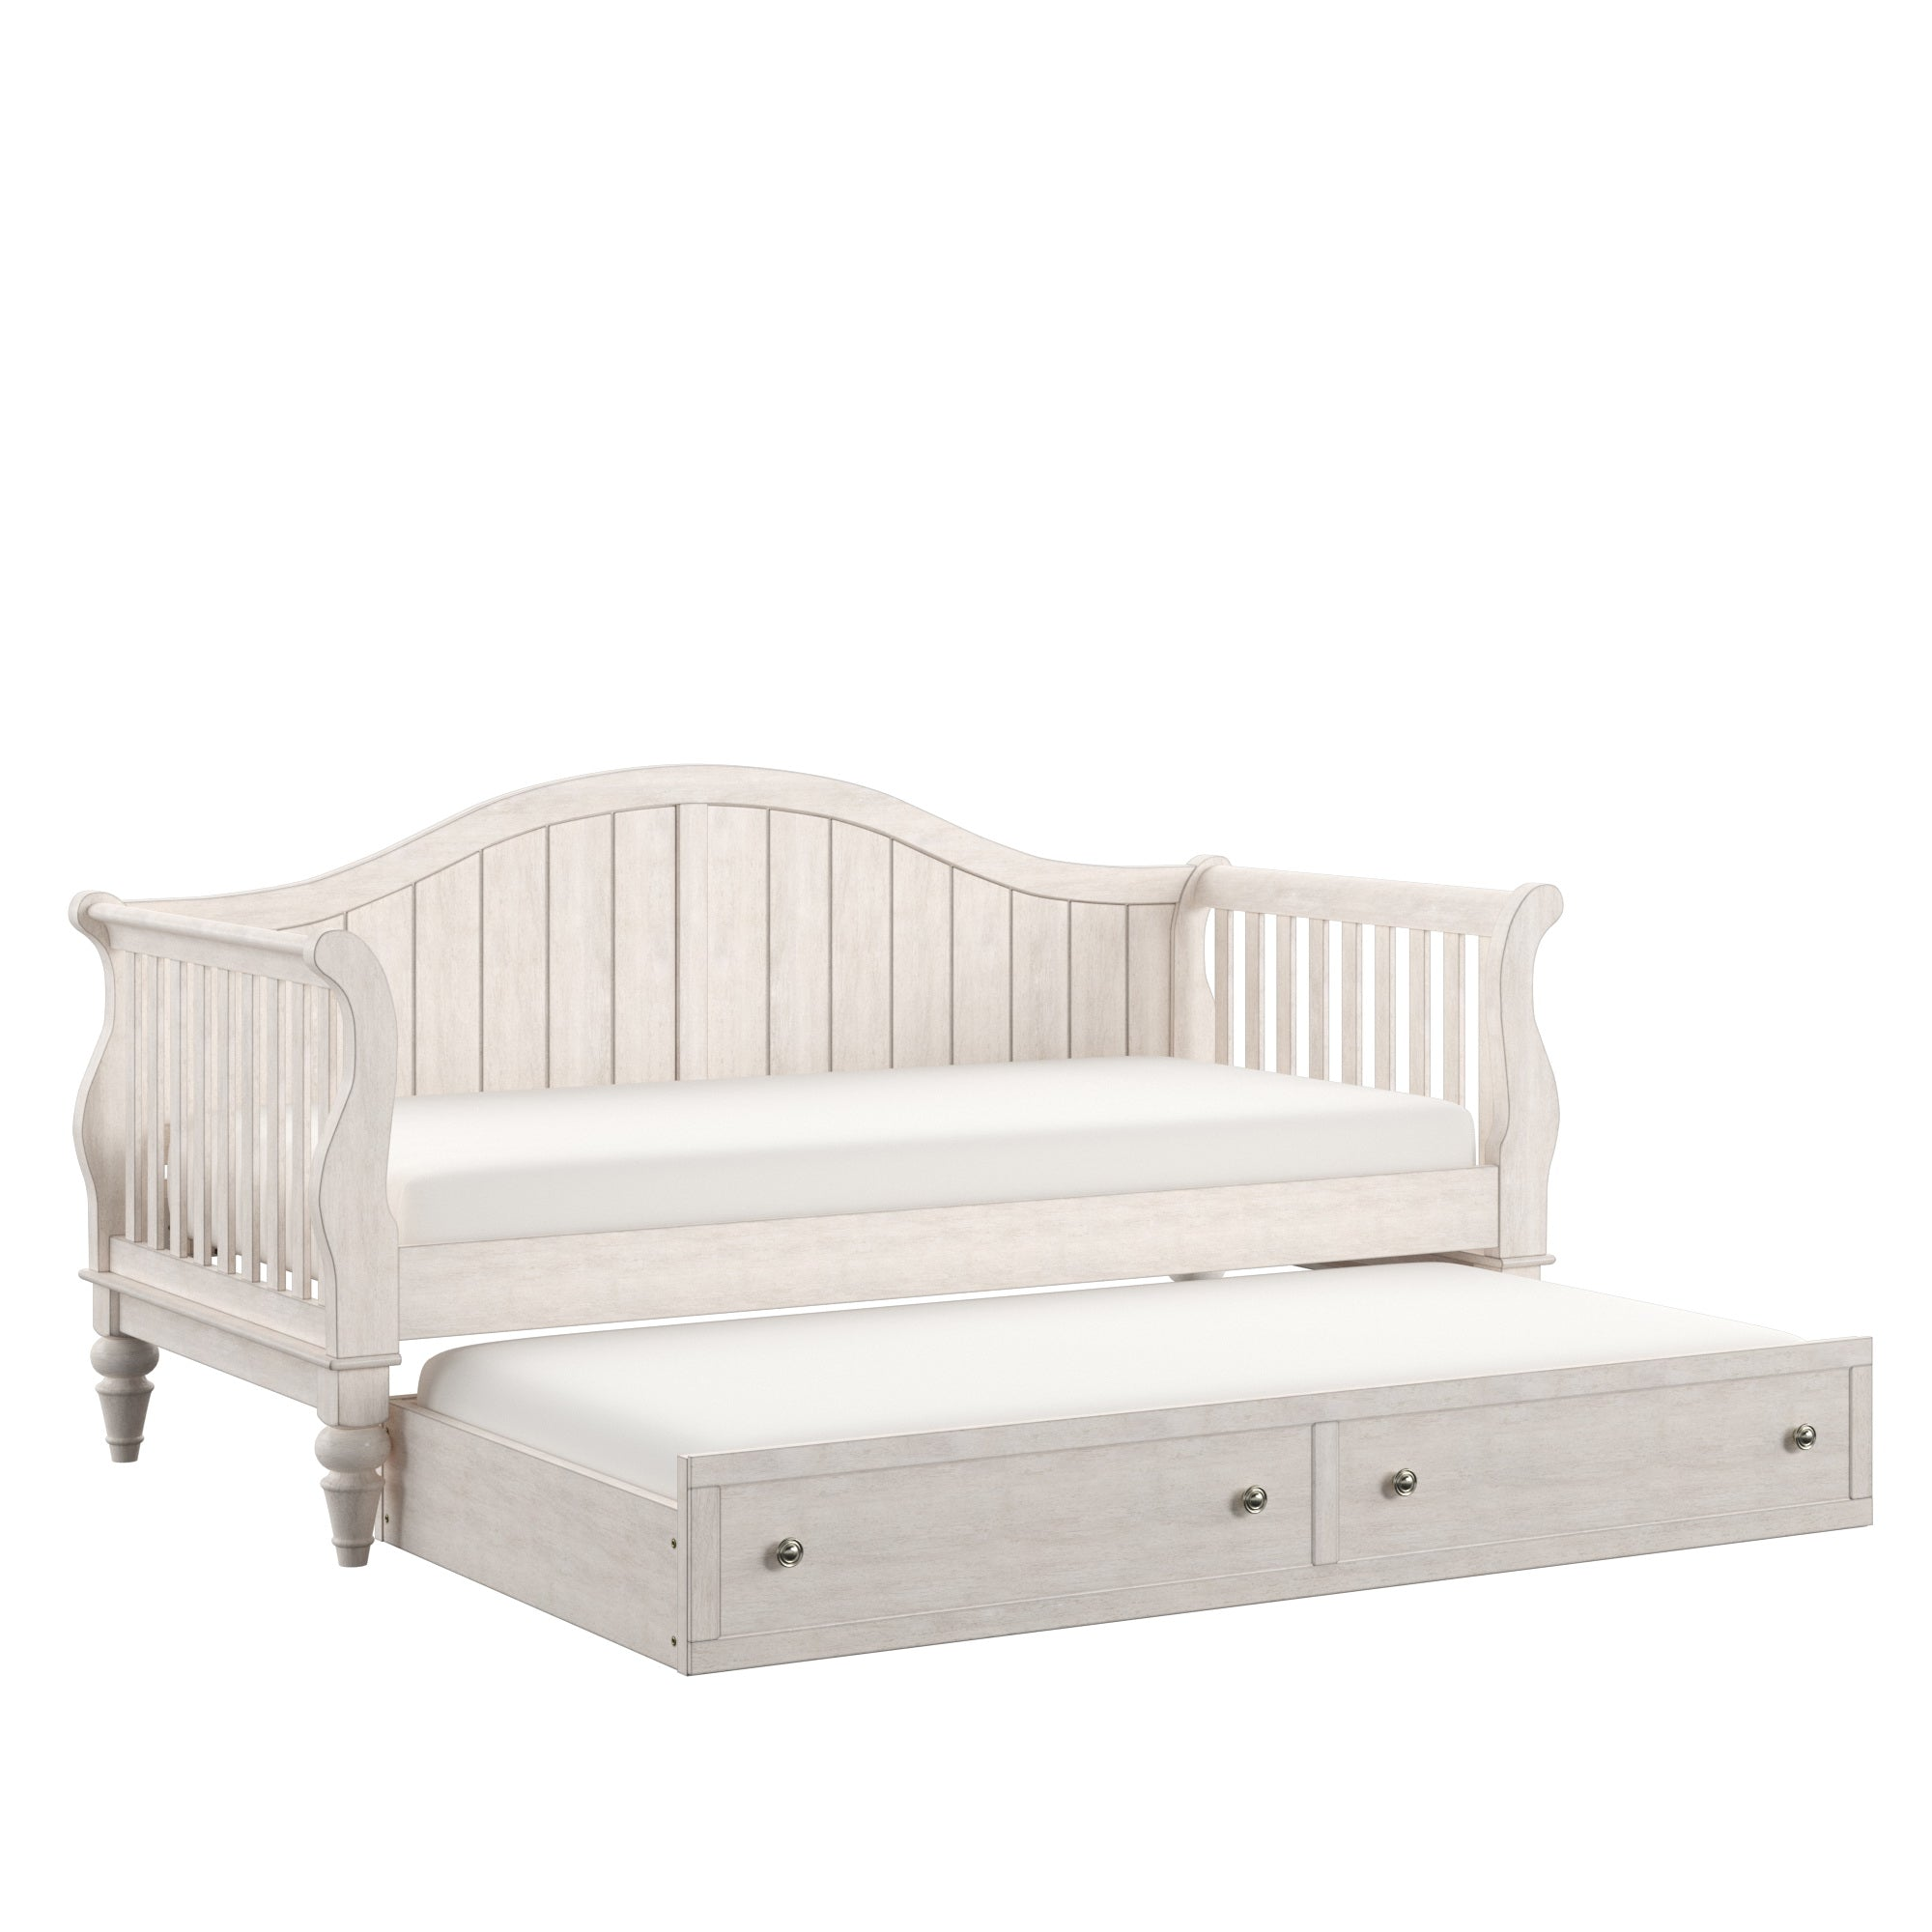 Traditional Wood Slat Daybed - Antique White, With Trundle